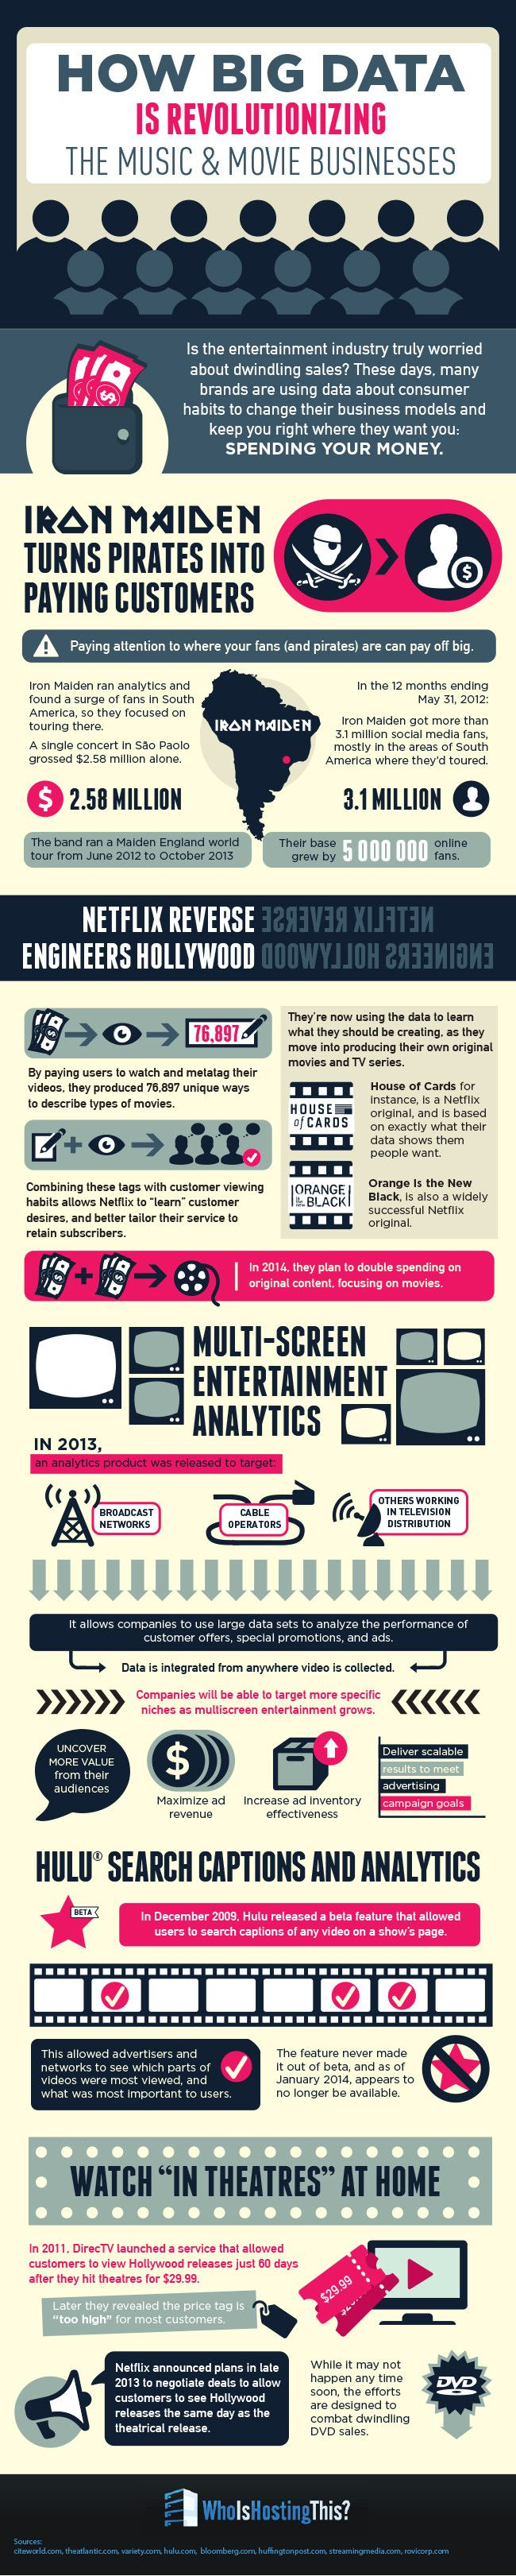 How Big Data is Revolutionizing the Music and Movie Business #infographic